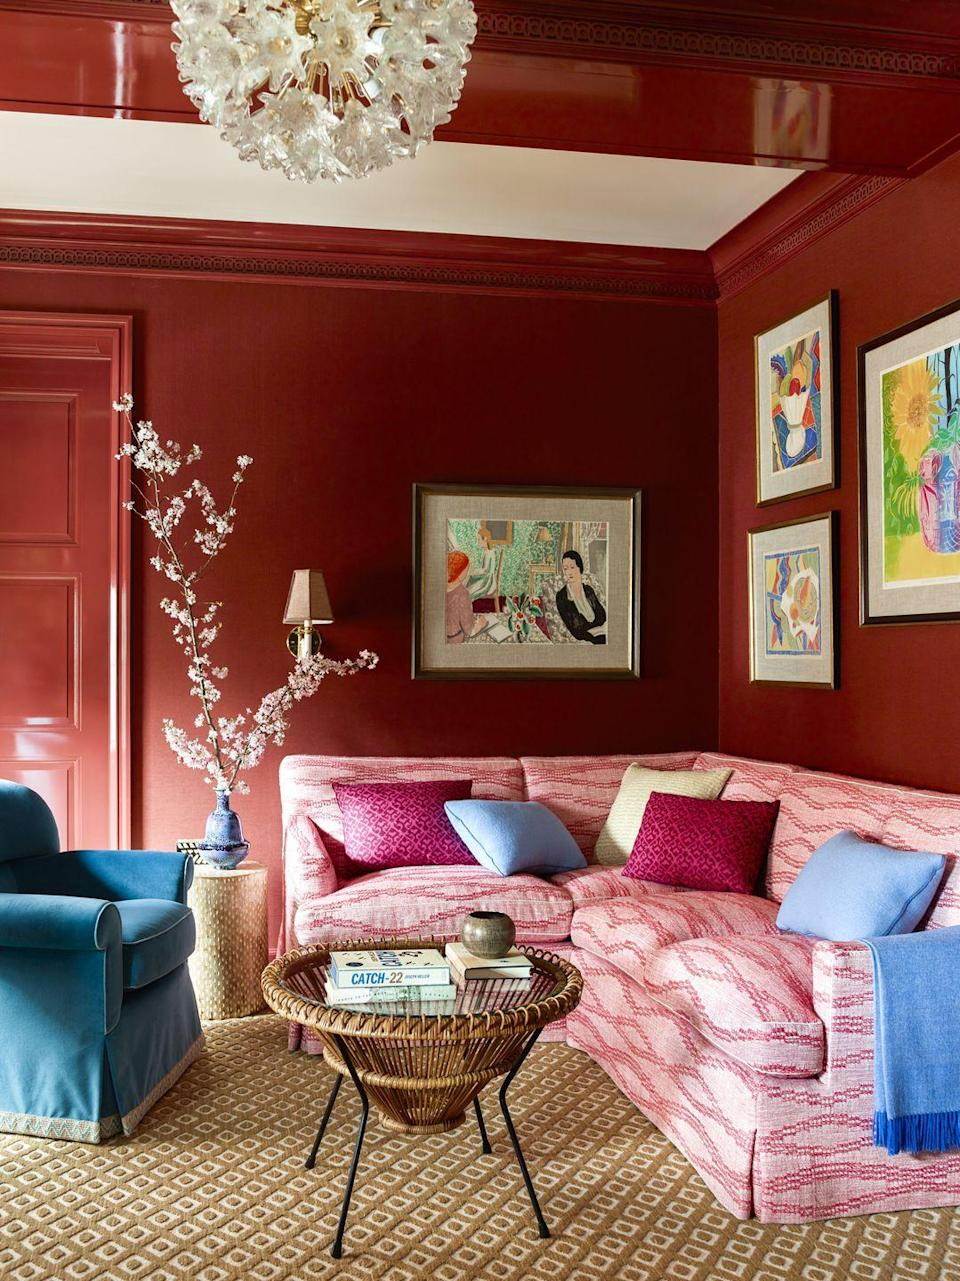 """<p>Just avoid super-bright reds and your house won't look like a fire station. A richer shade of crimson warms up this space by <a href=""""https://www.katieridder.com/"""" rel=""""nofollow noopener"""" target=""""_blank"""" data-ylk=""""slk:Katie Ridder"""" class=""""link rapid-noclick-resp"""">Katie Ridder</a>, while contrasting furniture in pinks and blues helps break up the bold hue. </p>"""